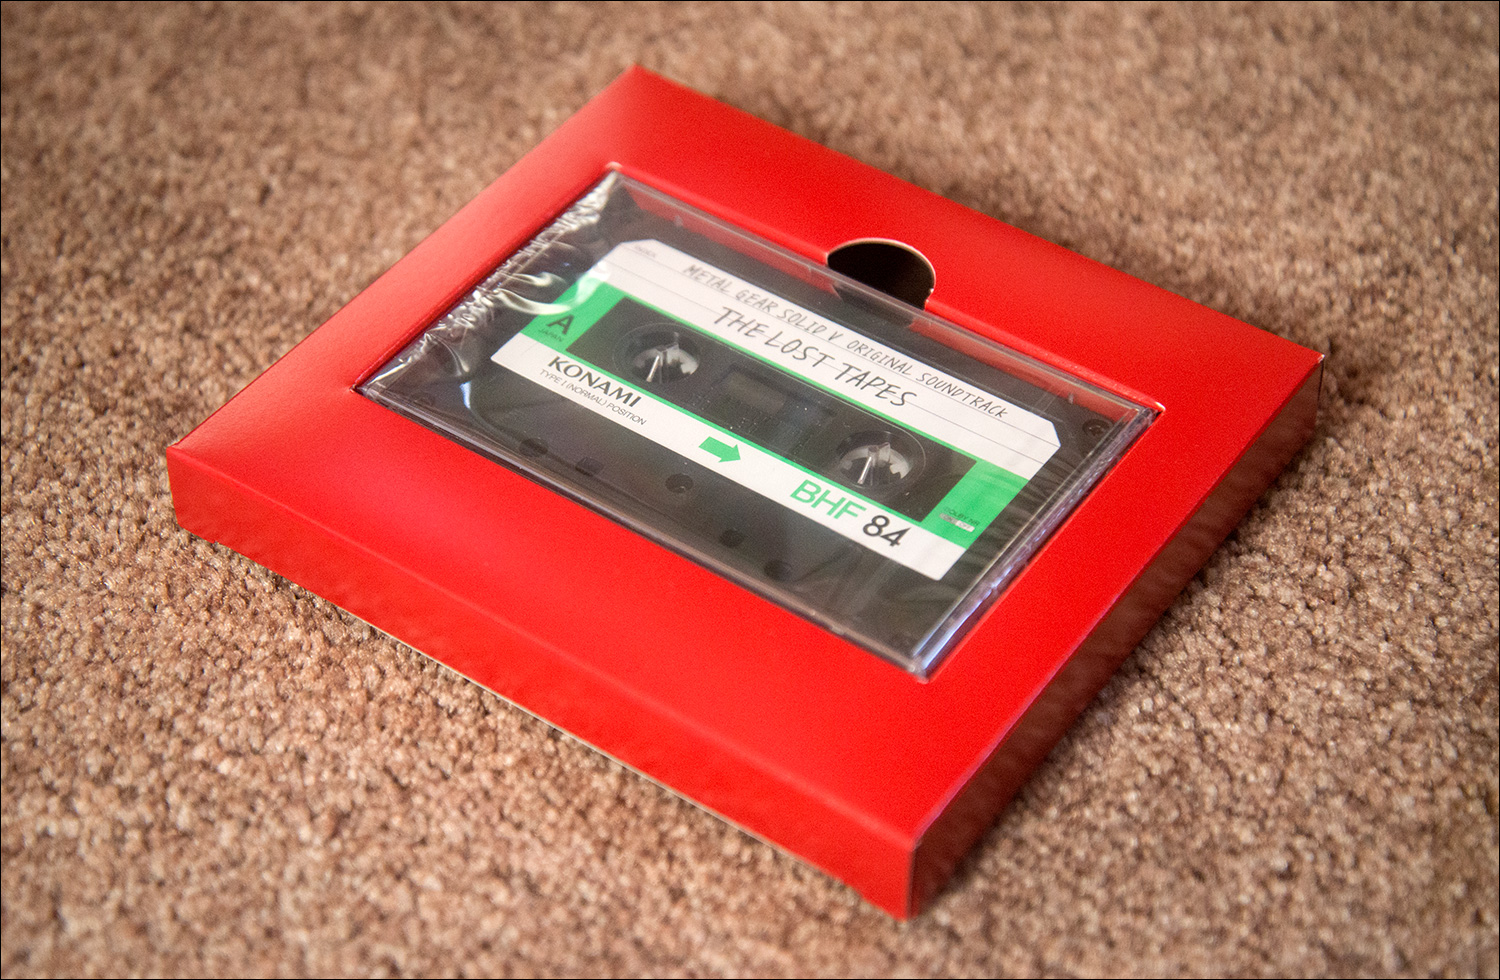 Metal-Gear-Solid-V-The-Lost-Tapes-Cassette-Tape-Holder